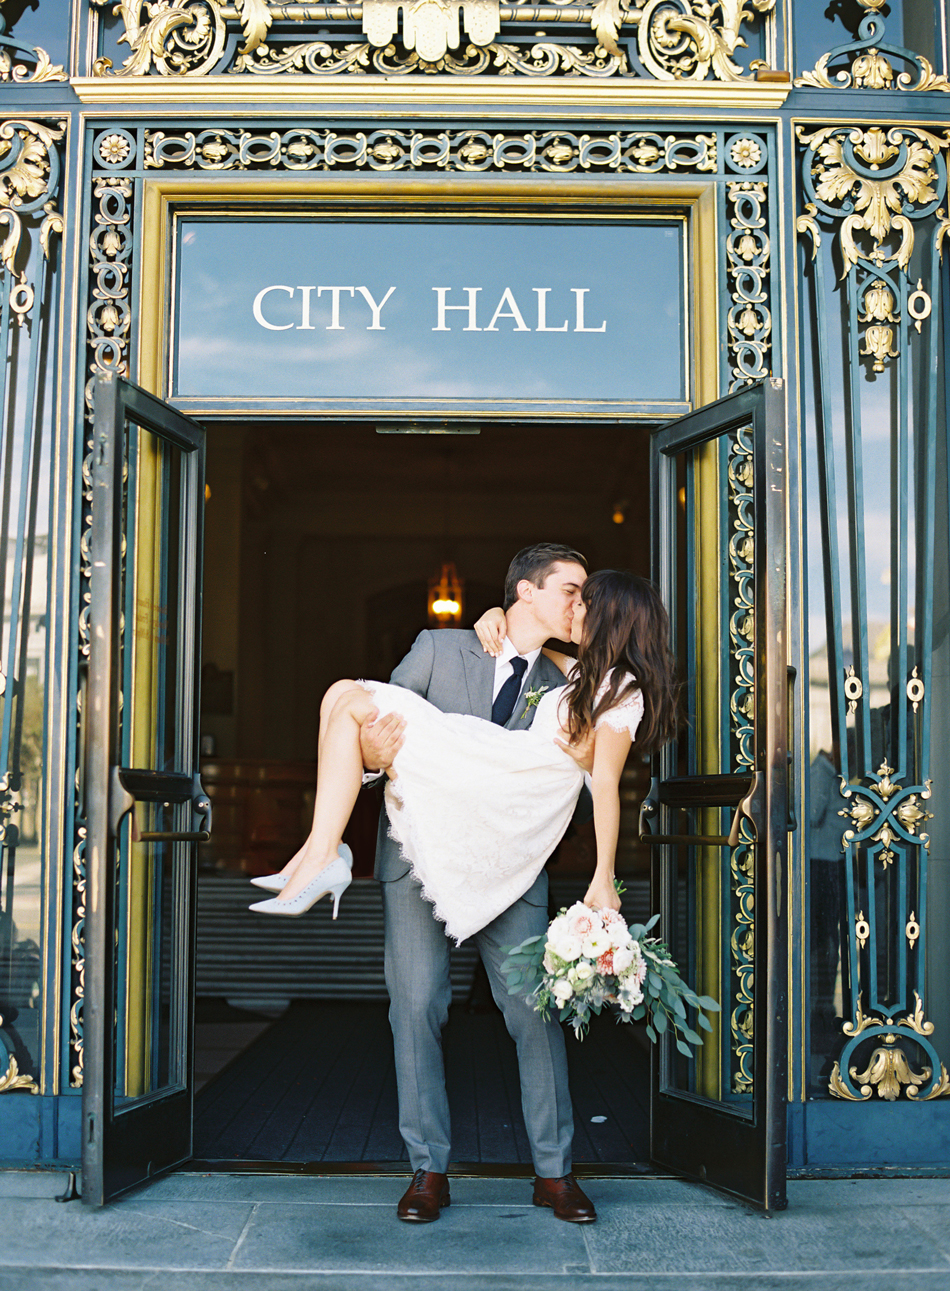 groom carries bride out of city hall after wedding ceremony